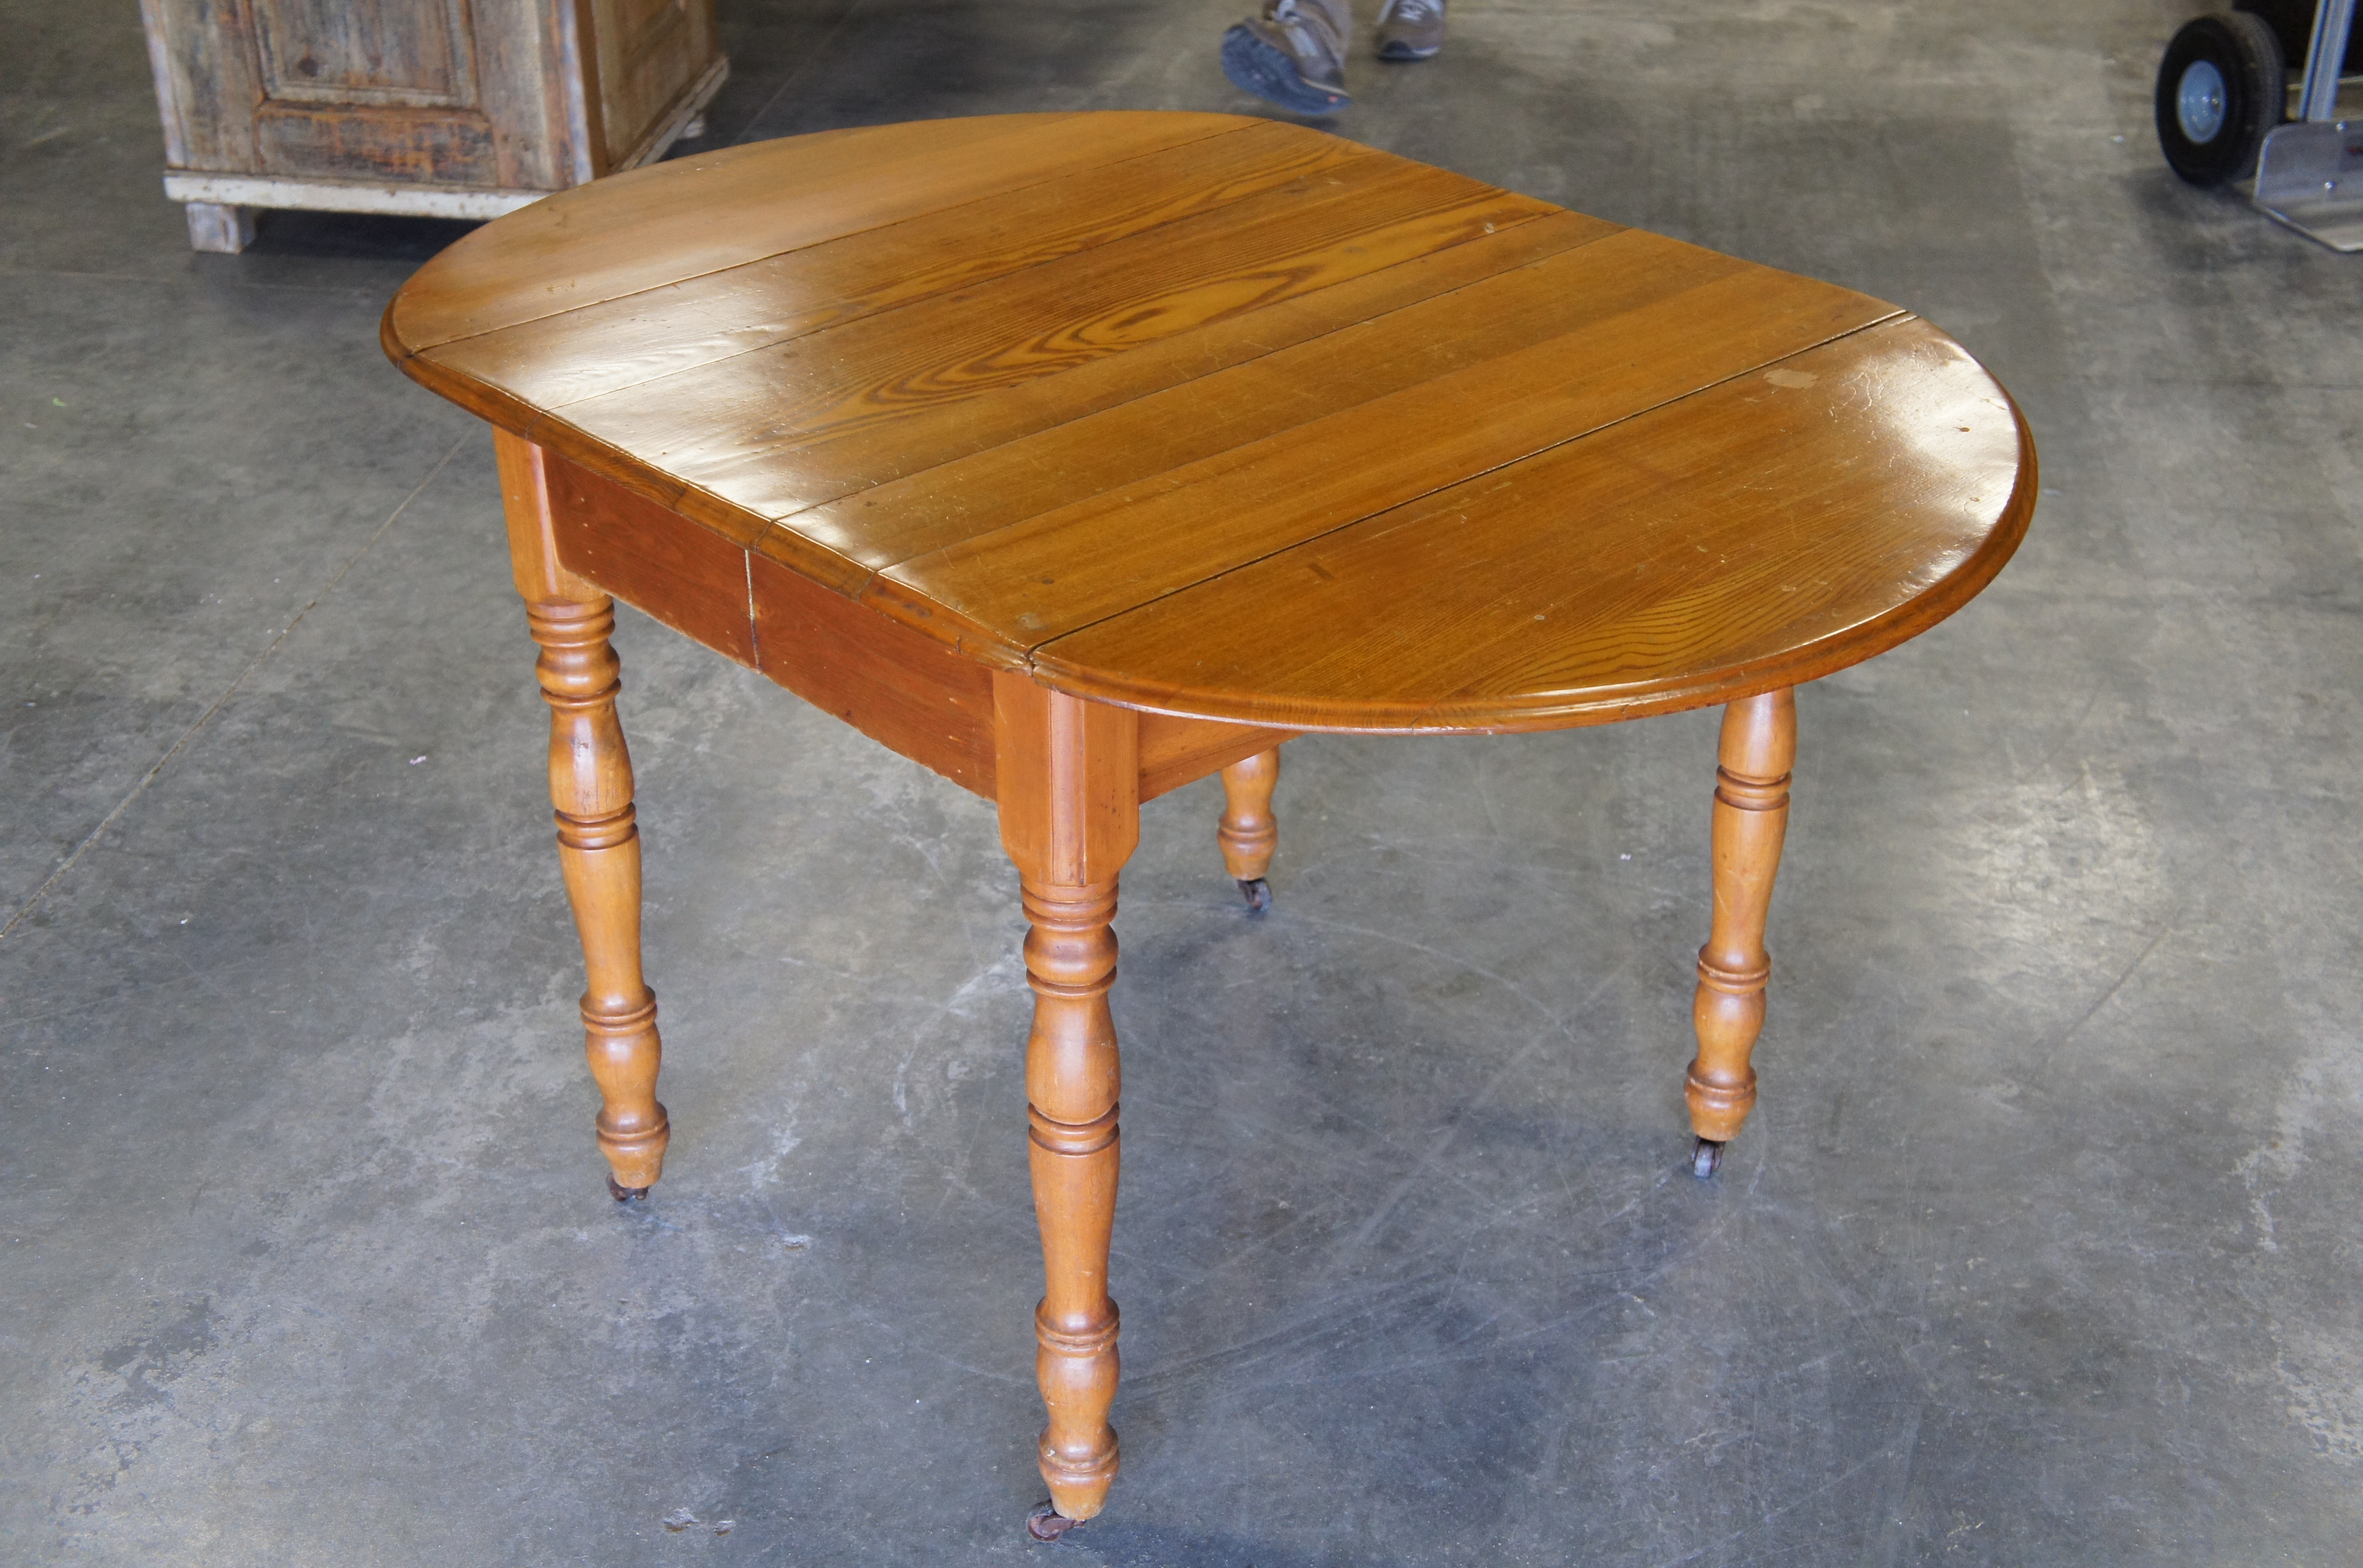 Merveilleux Late 19th Century 19th Century Early American Oak Drop Leaf Dining Table  Turned Leg Casters For